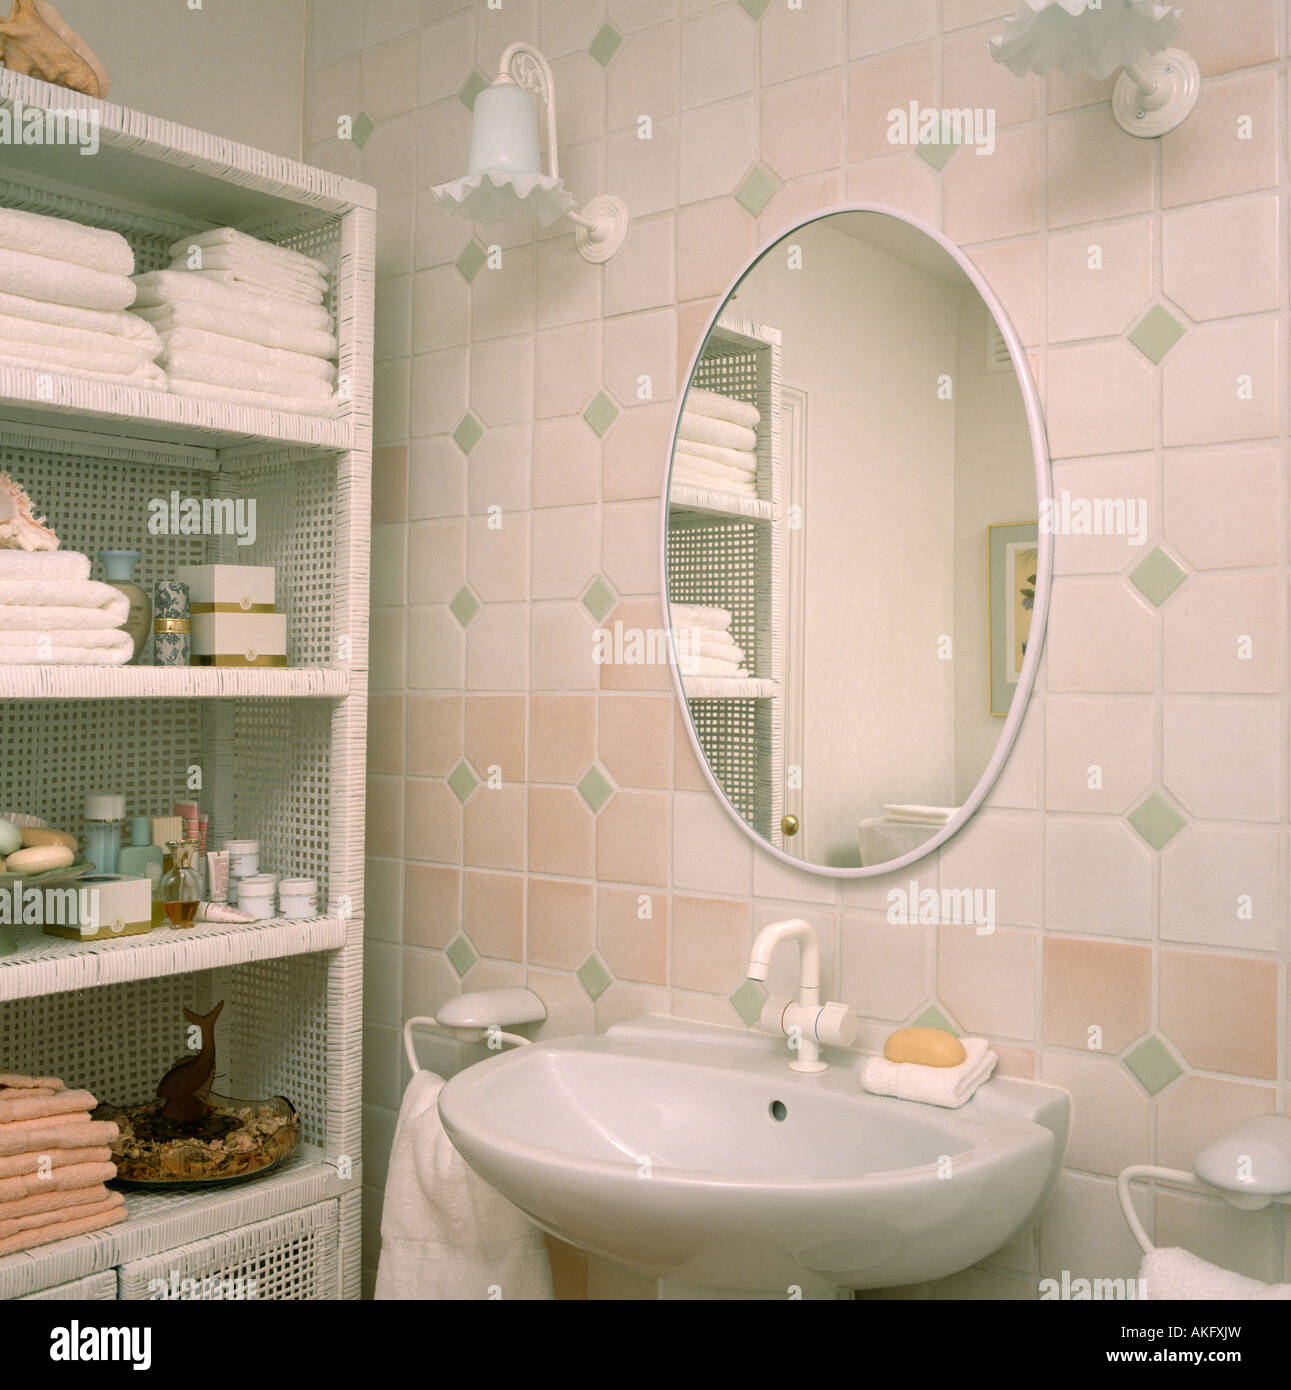 Oval Mirror On Pink And White Tiled Wall Above Basin In Small Bathroom With  Towels And